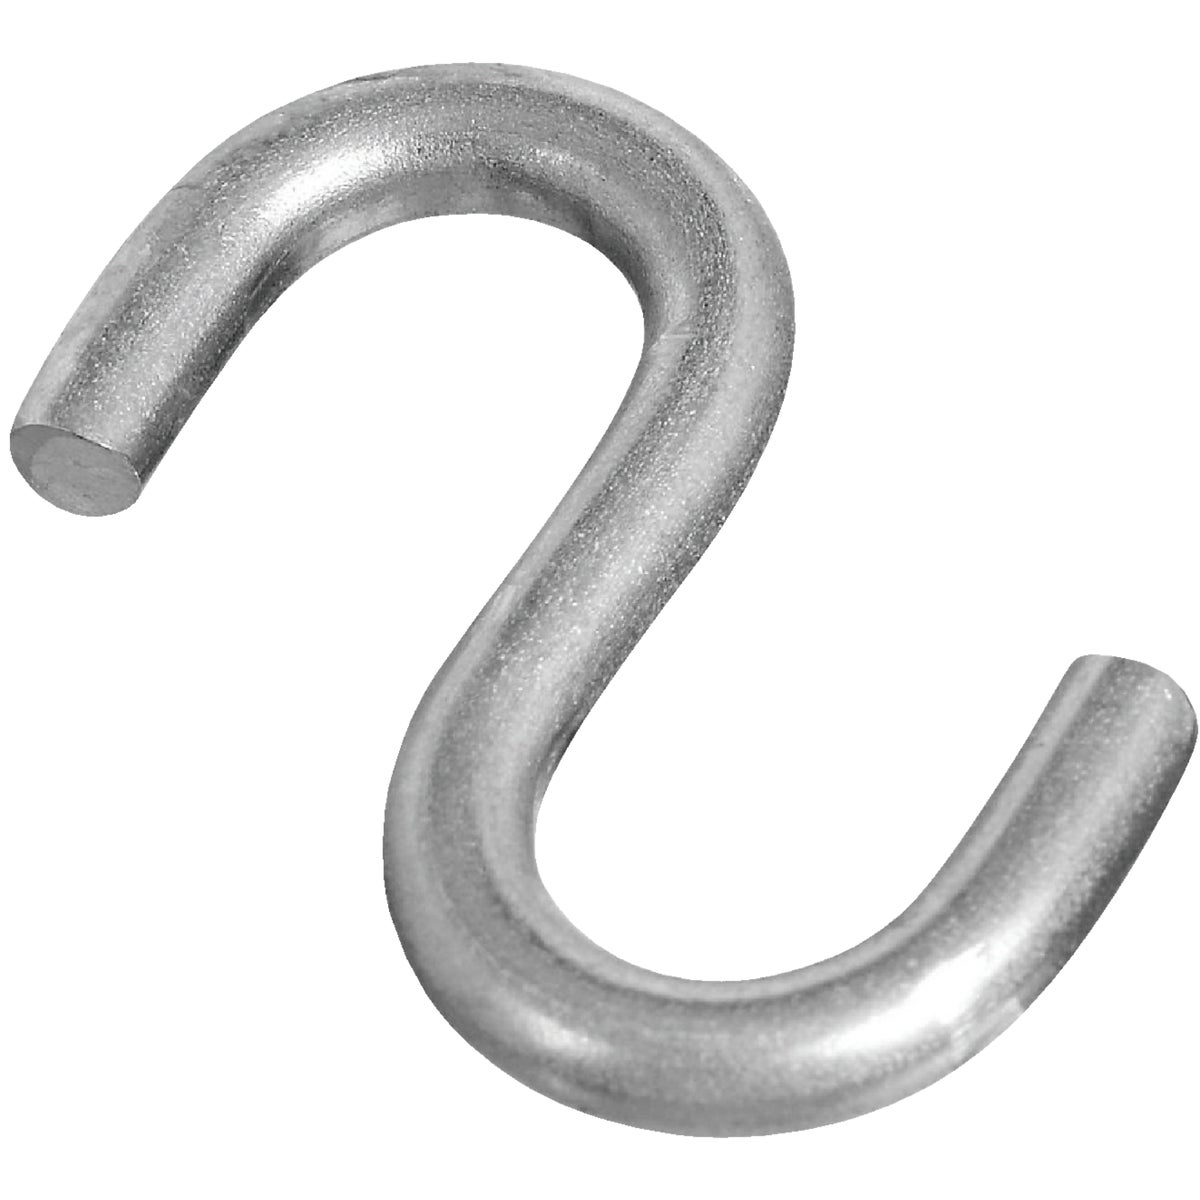 "1-1/2"" SS HEAVY S HOOK - N233536 by National Mfg Co"